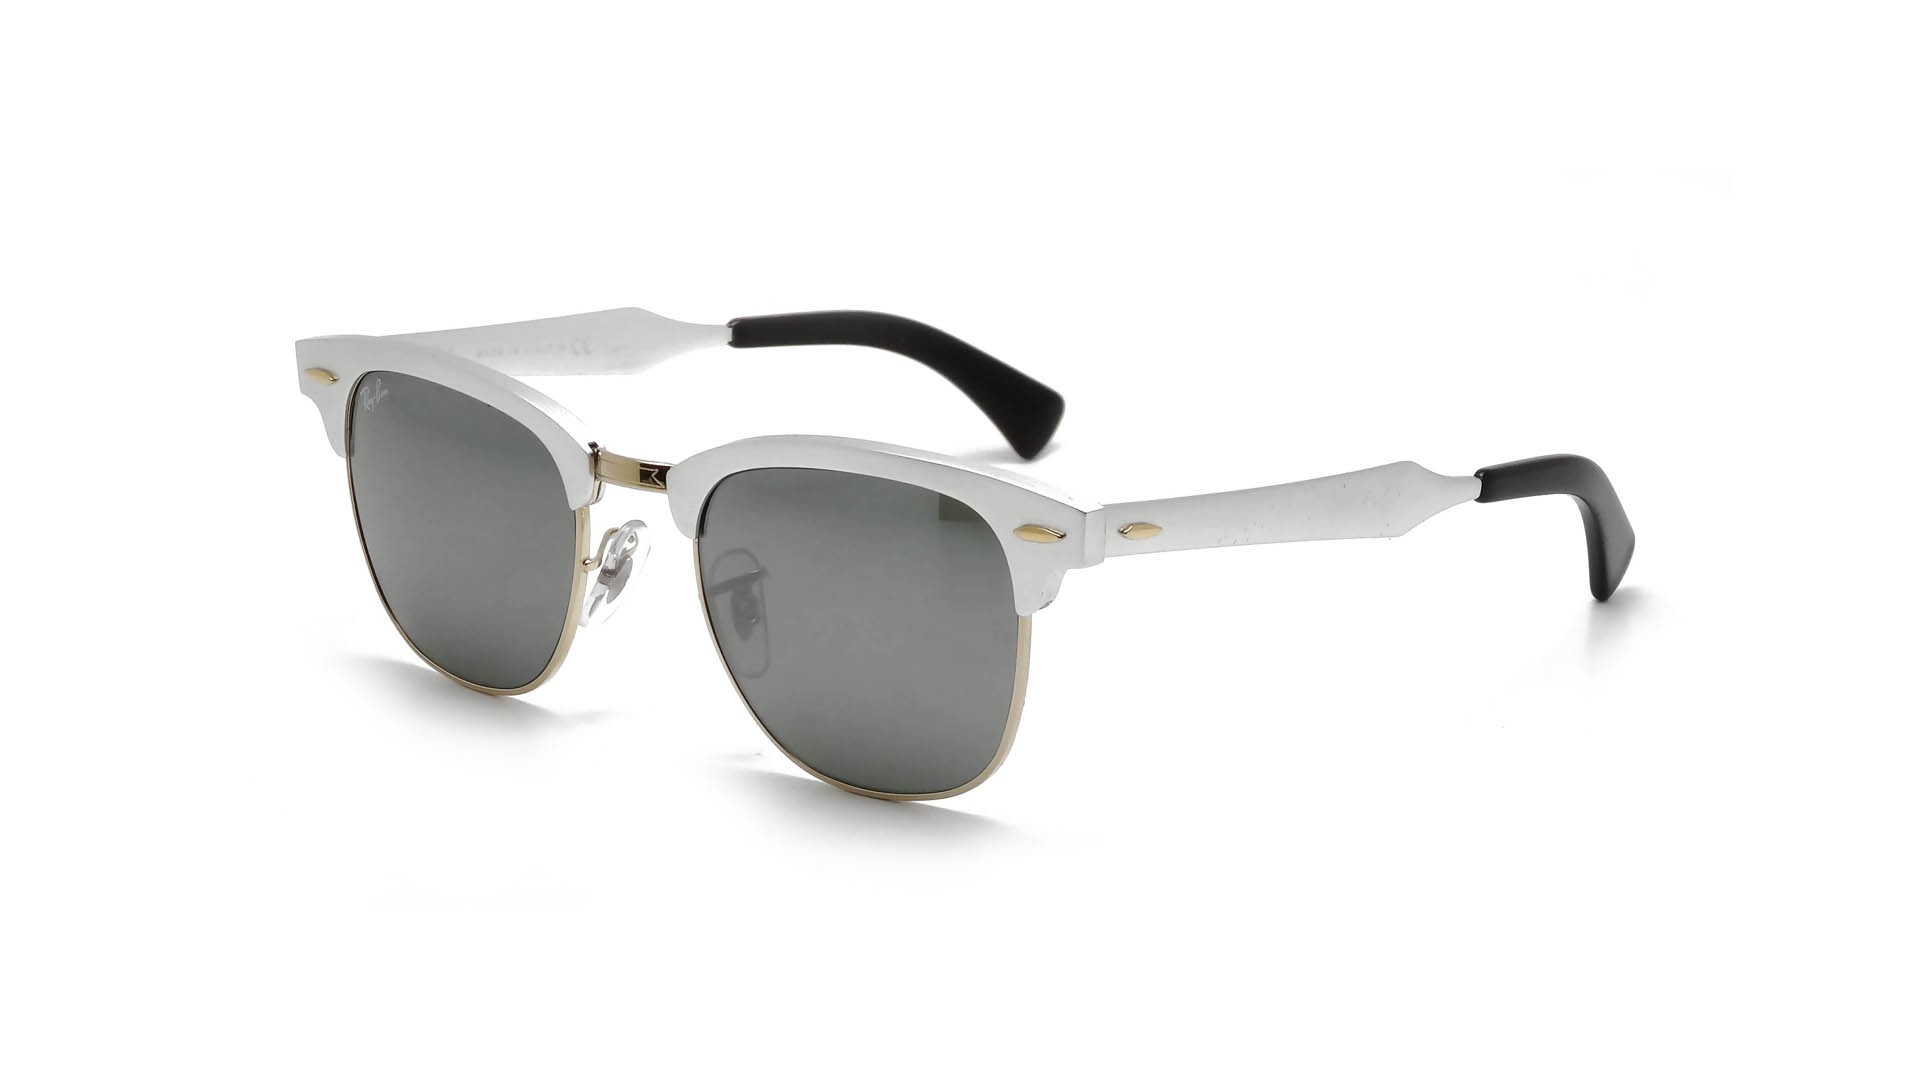 bd32f78c0093 Sunglasses Ray-Ban Clubmaster Aluminium Silver RB3507 137 40 49-21 Medium  Gradient Mirror